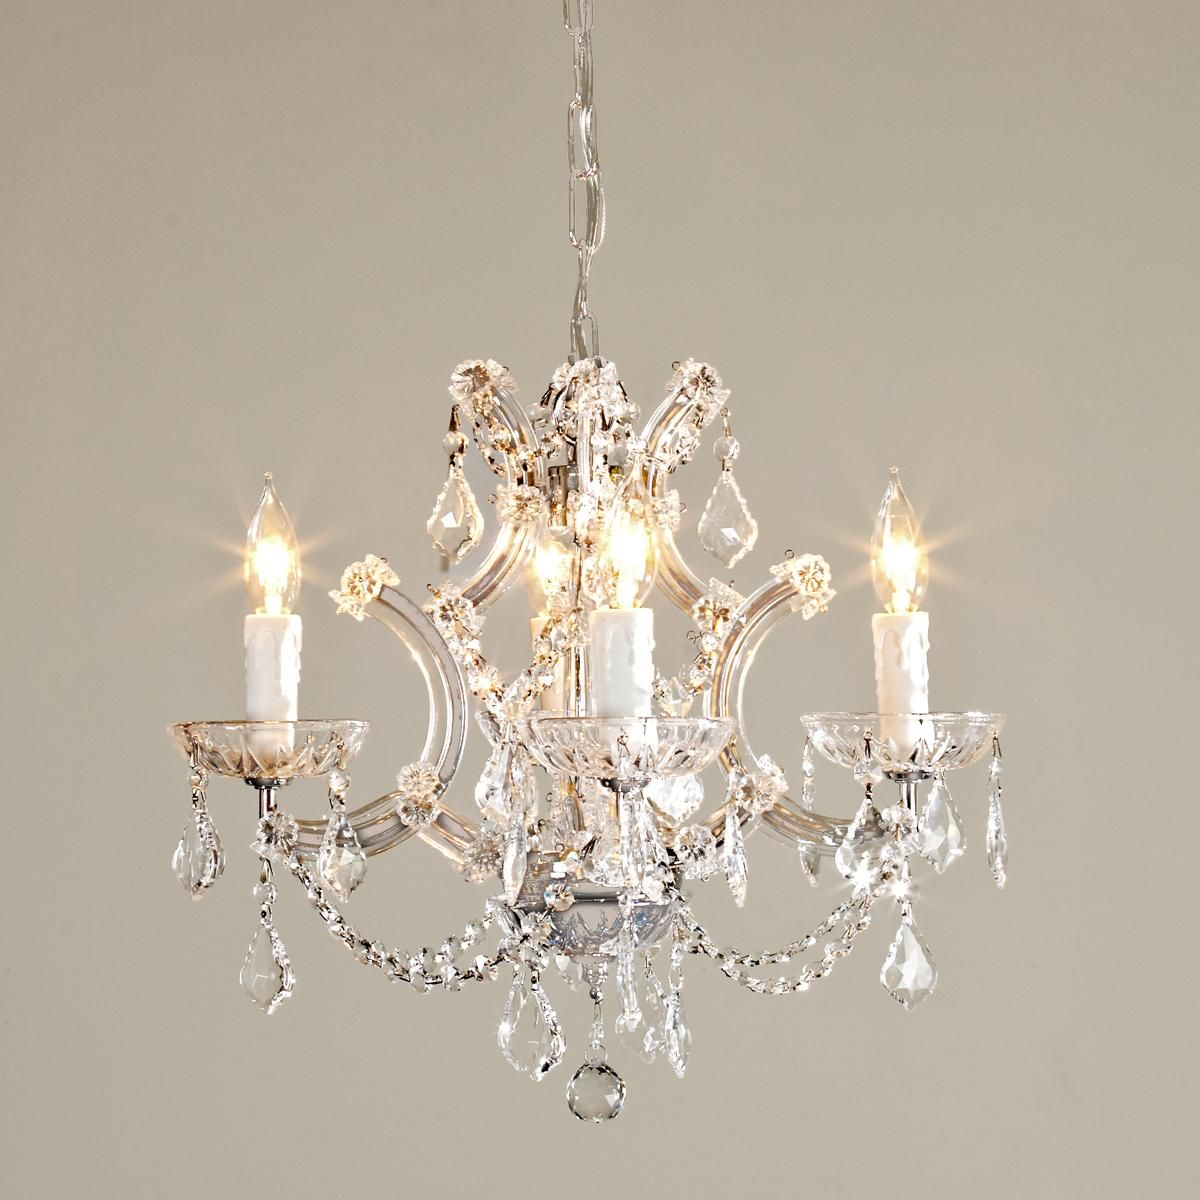 Round Crystal Chandelier L D Gerber Chandelier Bedroom Bathroom Chandelier Mini Chandelier